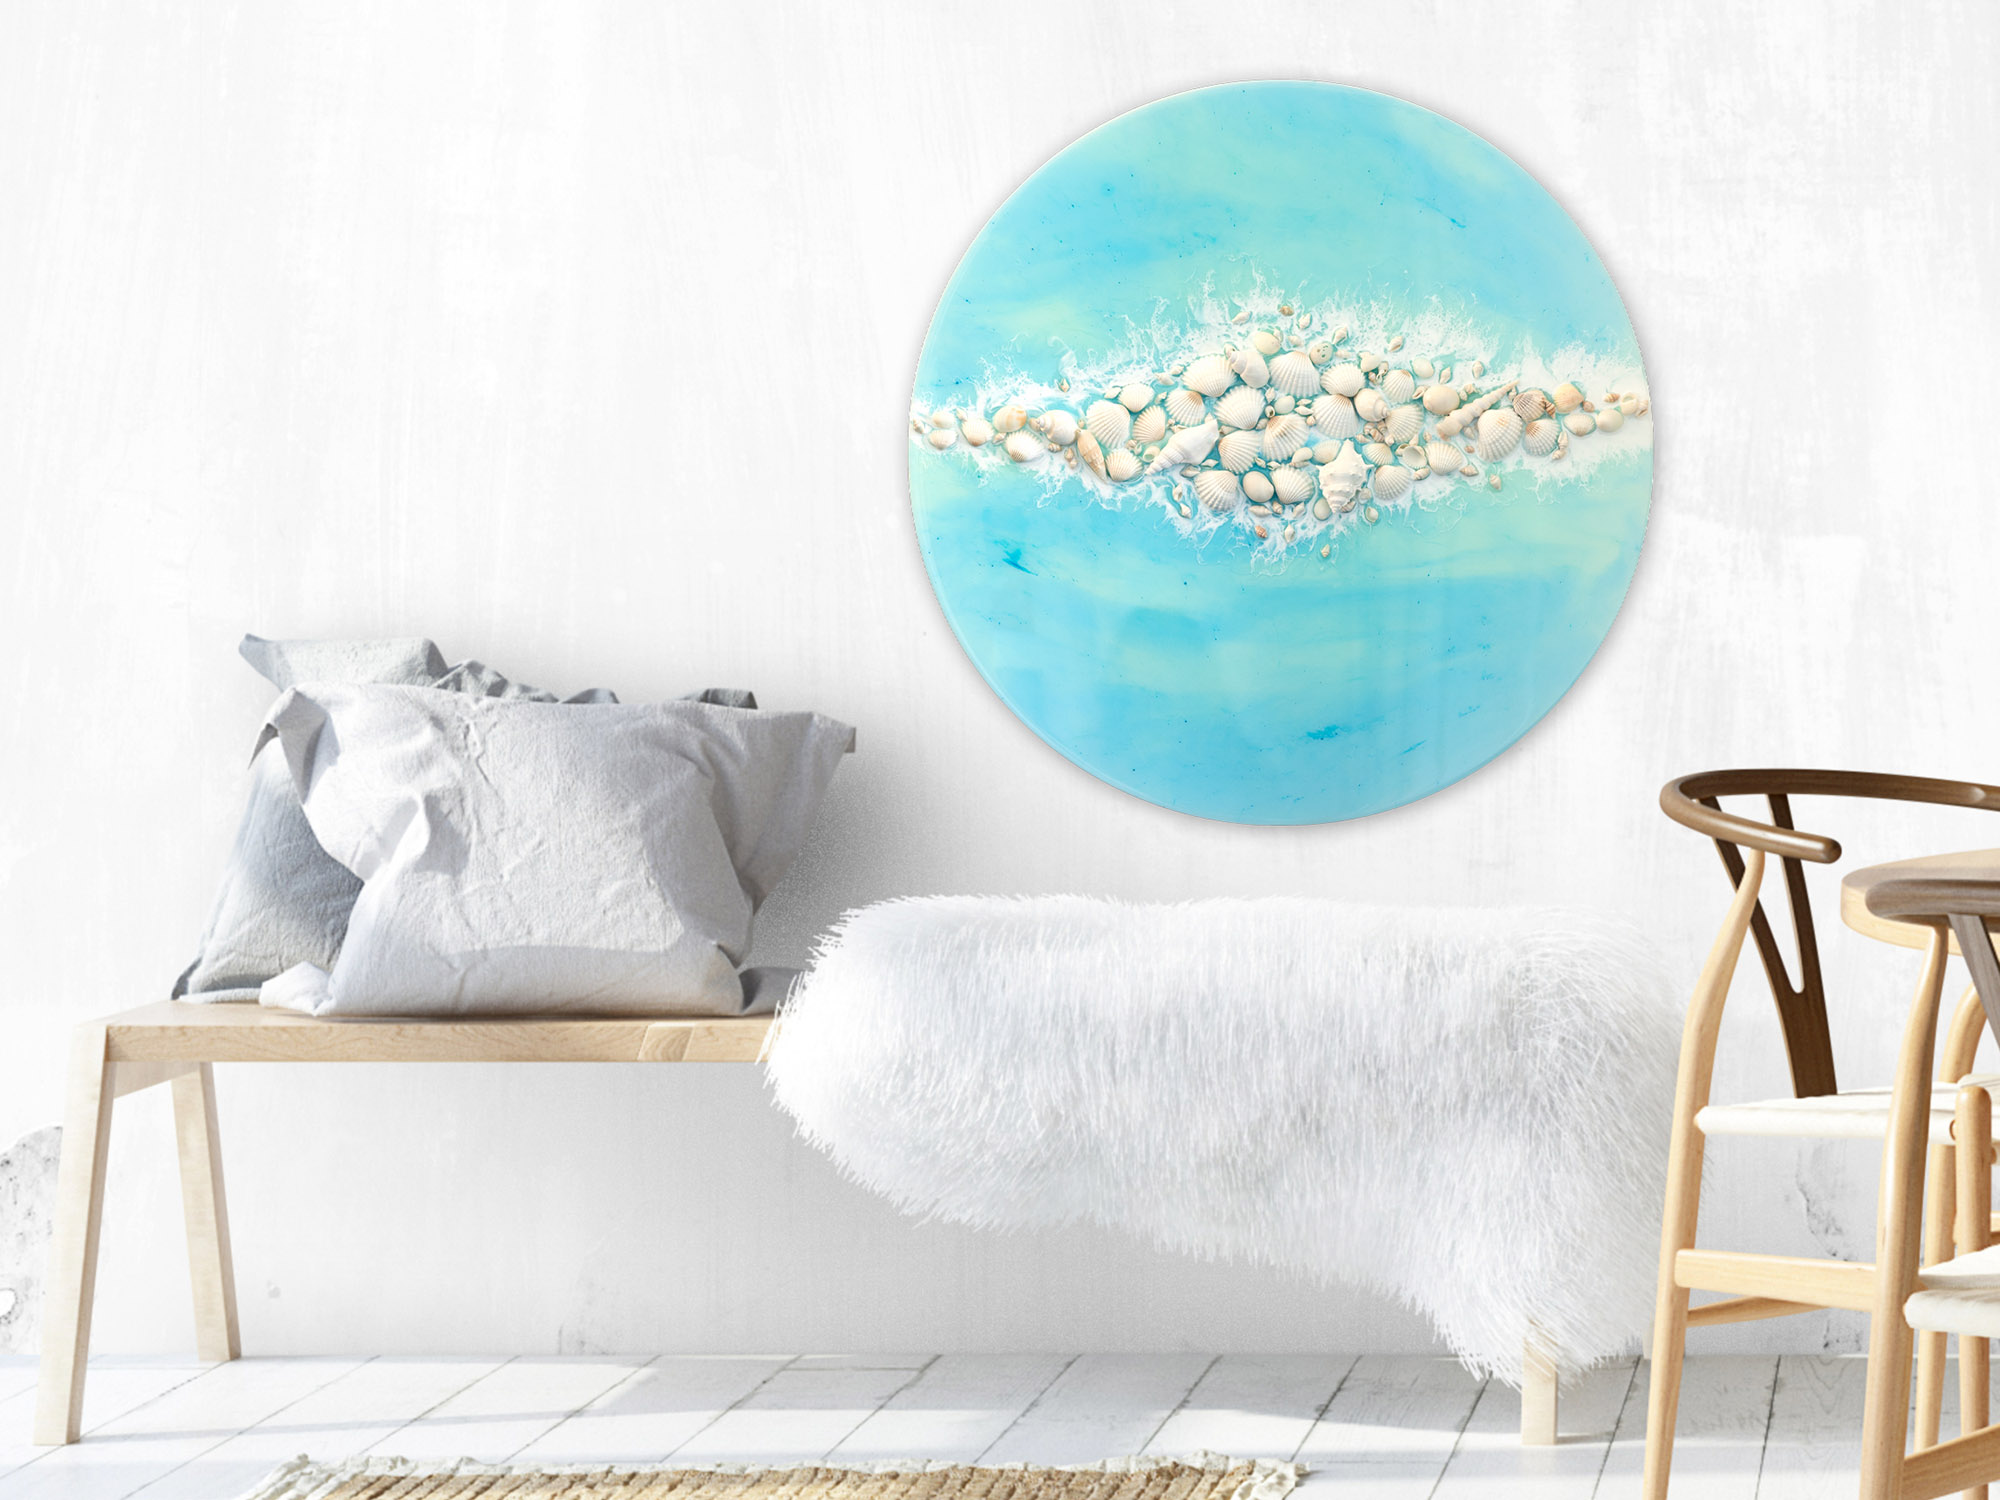 Coastal Art With Shells Resin Art Purity By Michelle Tracey